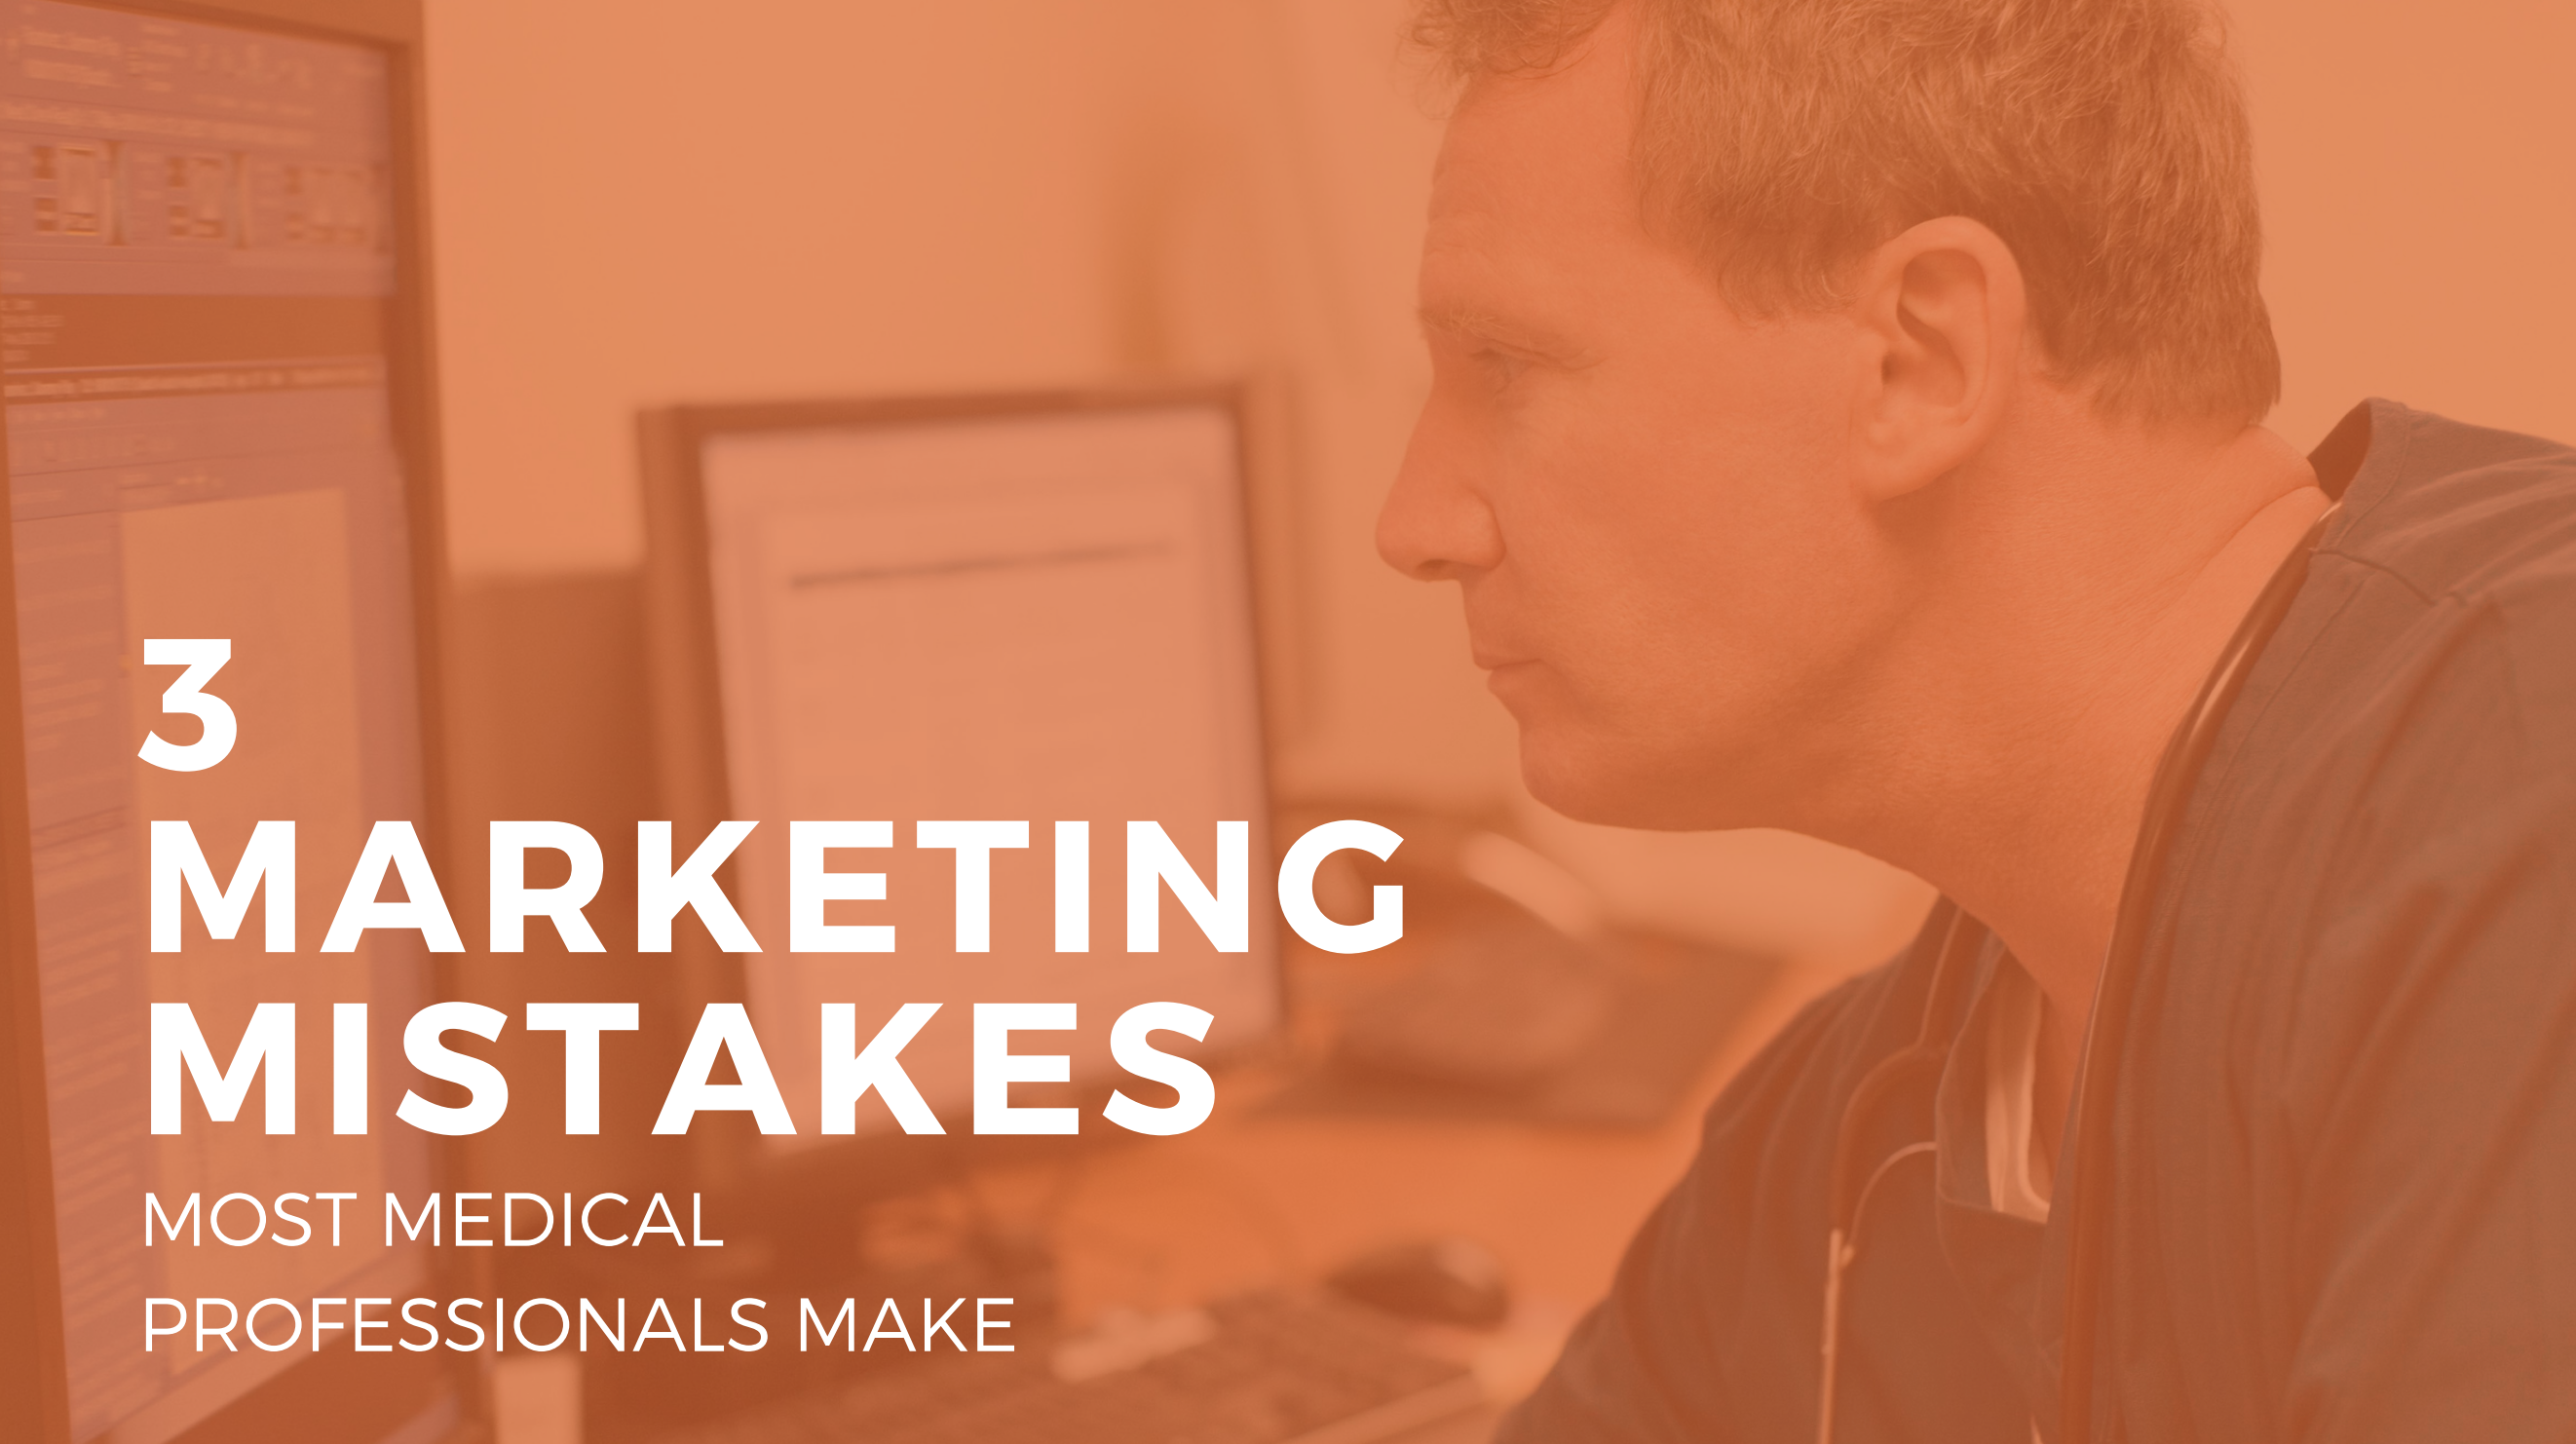 3 Marketing Mistakes Most Medical Professionals Make